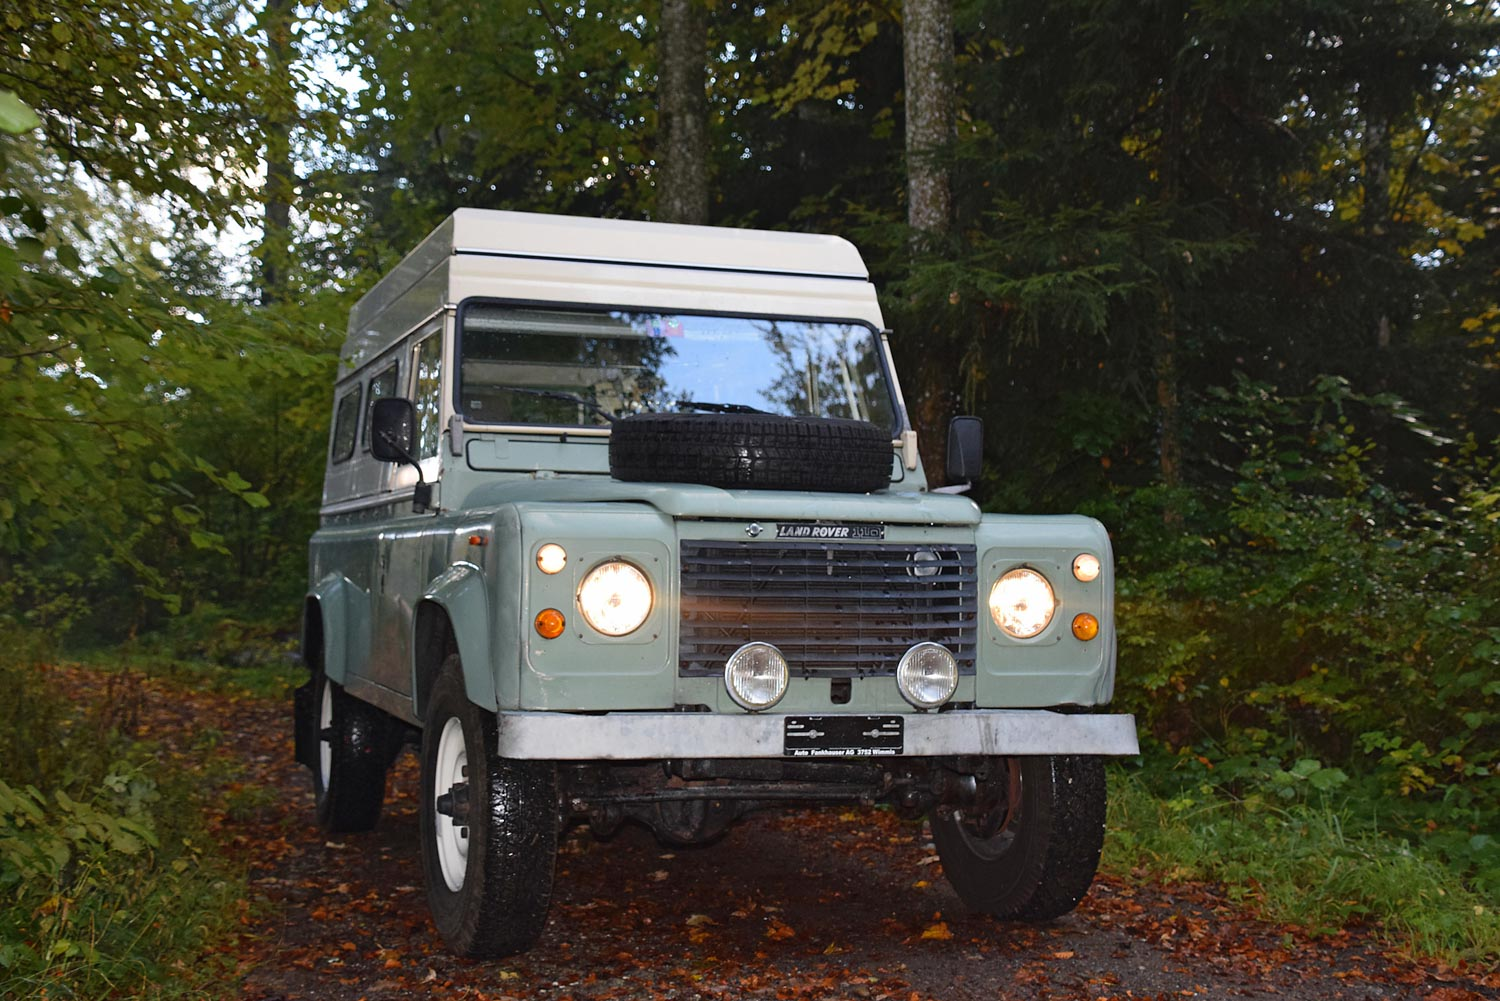 Land-rover station photo - 4